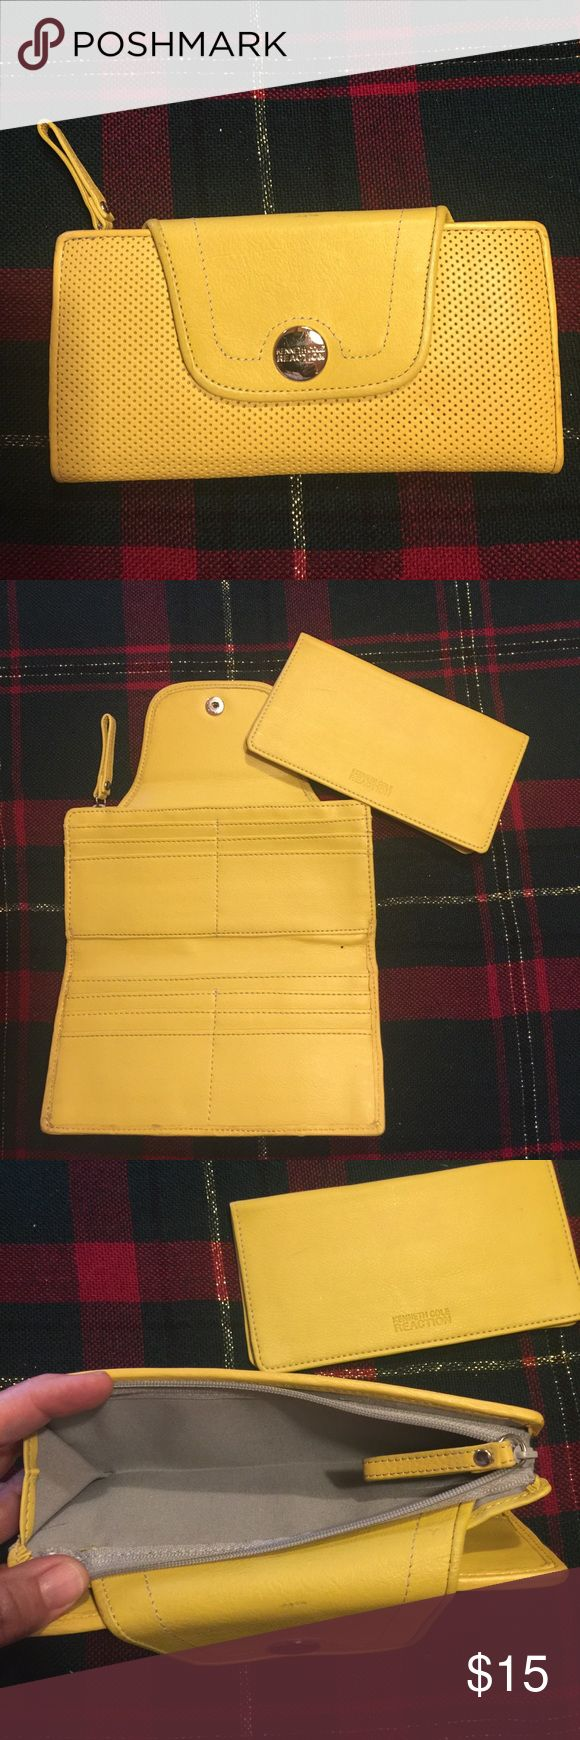 Kenneth Cole Reaction yellow leather wallet Kenneth Cole Reaction yellow leather wallet with leather check holder.  Gently used in good condition. kenneth Cole Reaction Bags Wallets